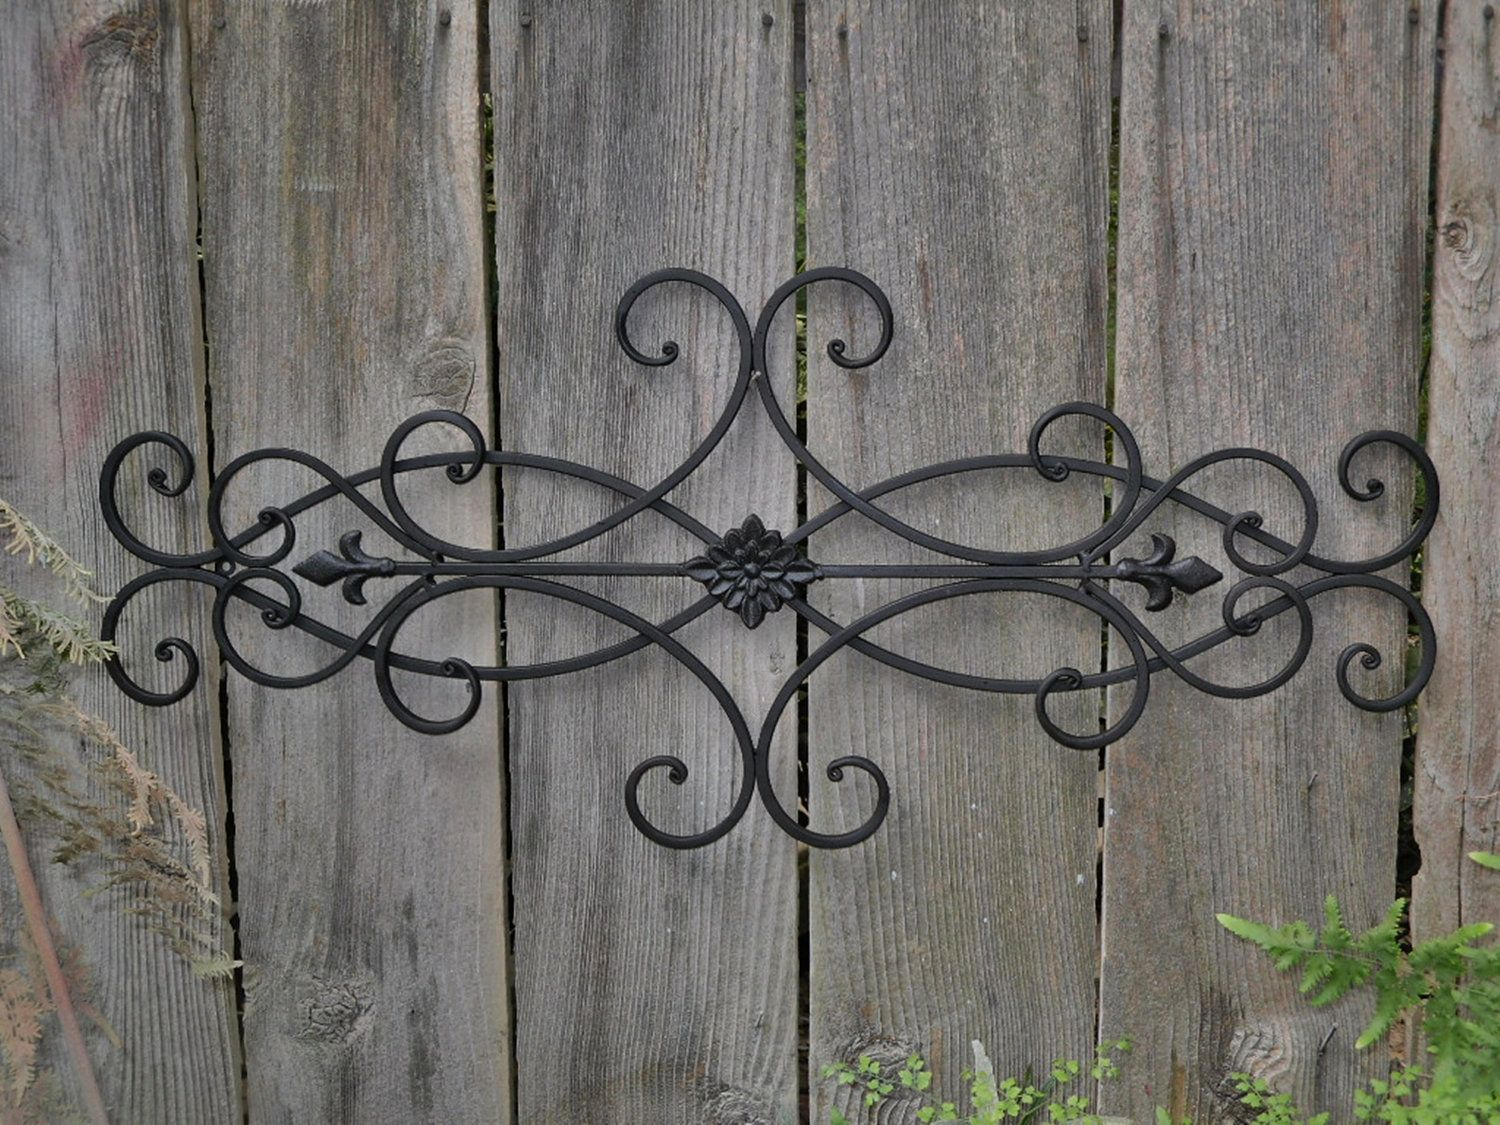 Exterior wall art wall decor indoor outdoor cottage style fleur collection in garden wall decor wrought iron wrought iron wall deco fleur de lis shab chic decor outside yard decor is decor that a persons next door ne amipublicfo Gallery